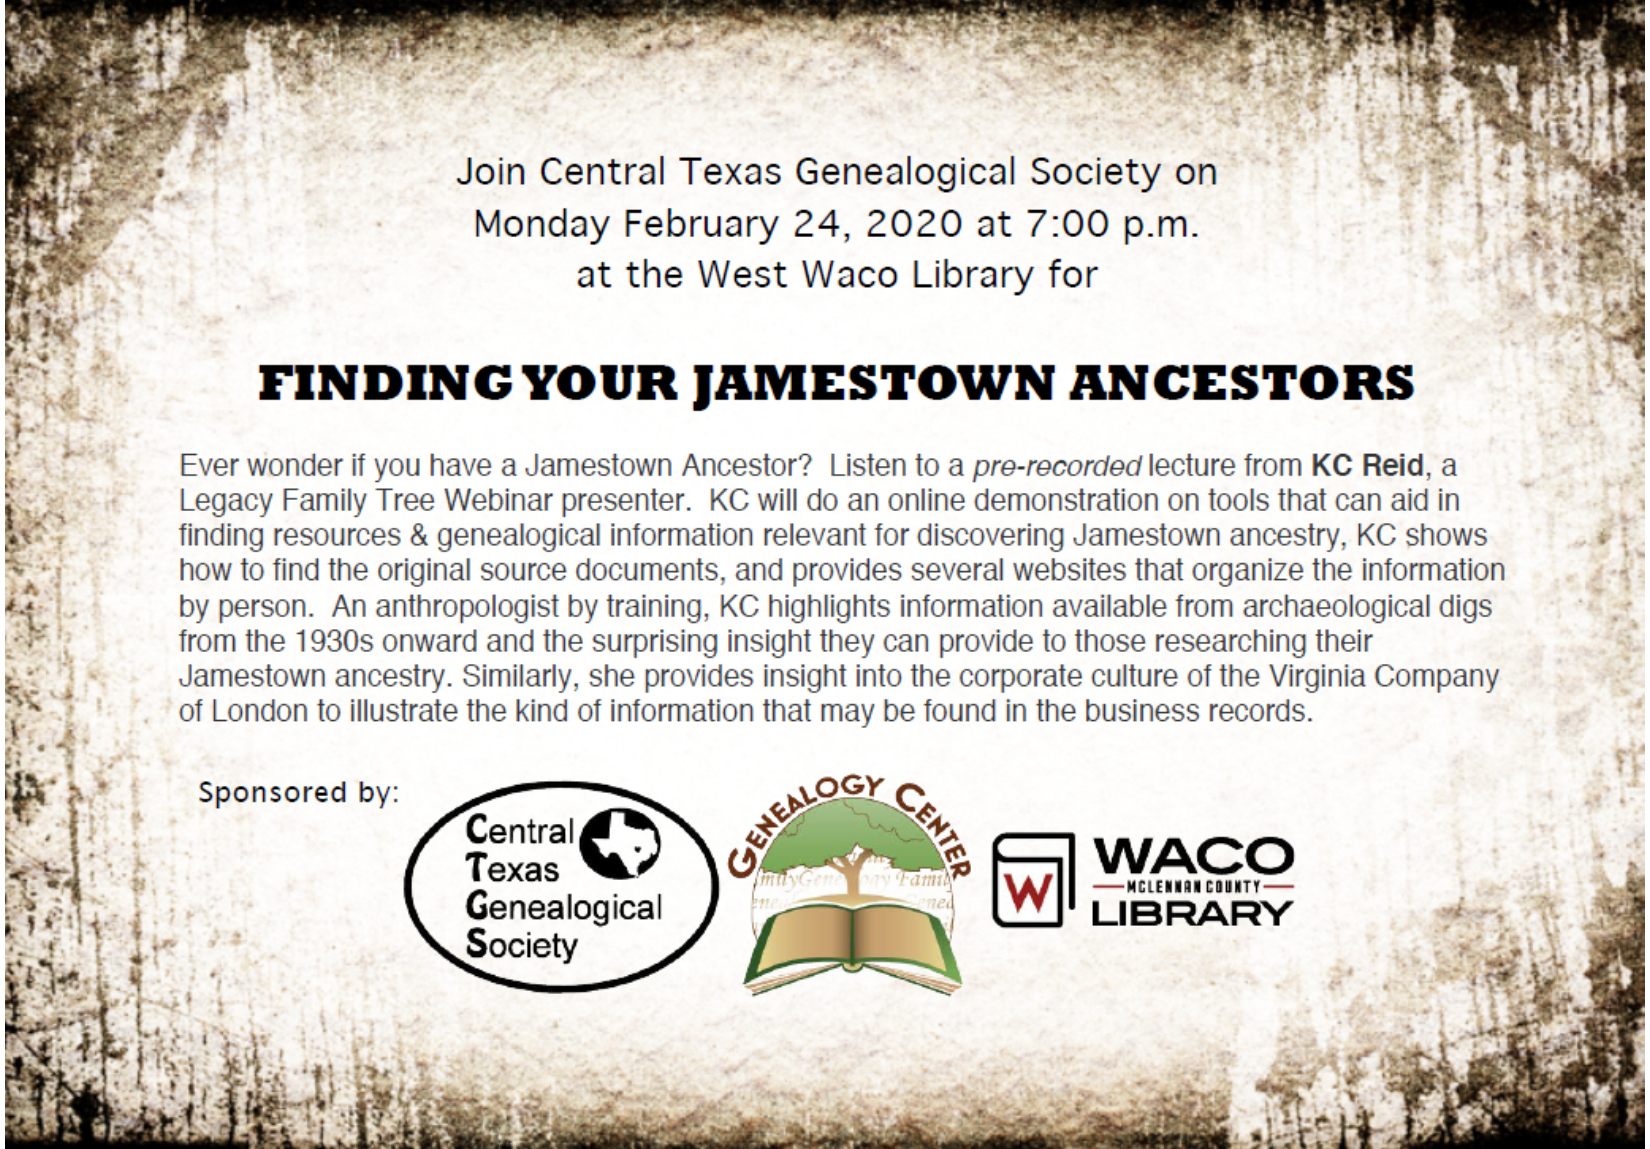 Finding Your Jamestown Ancestors